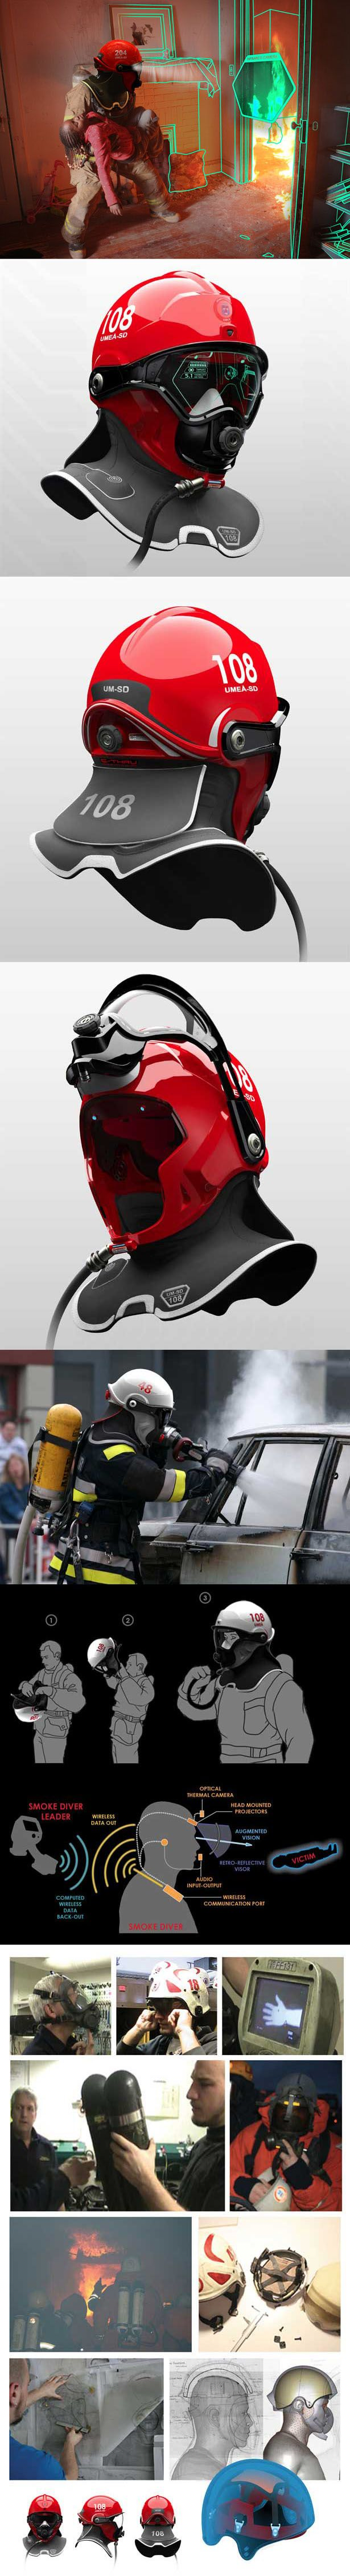 C-Thru smoke diving helmet concept. It helps firefighters to see clearly in smoke-filled buildings to do rescue missions. Using their traditional firefighting equipment, they have to keep hand contact with walls or crawl on the ground while carrying heavy air support and hand held equipment, this can slow down the rescue process.